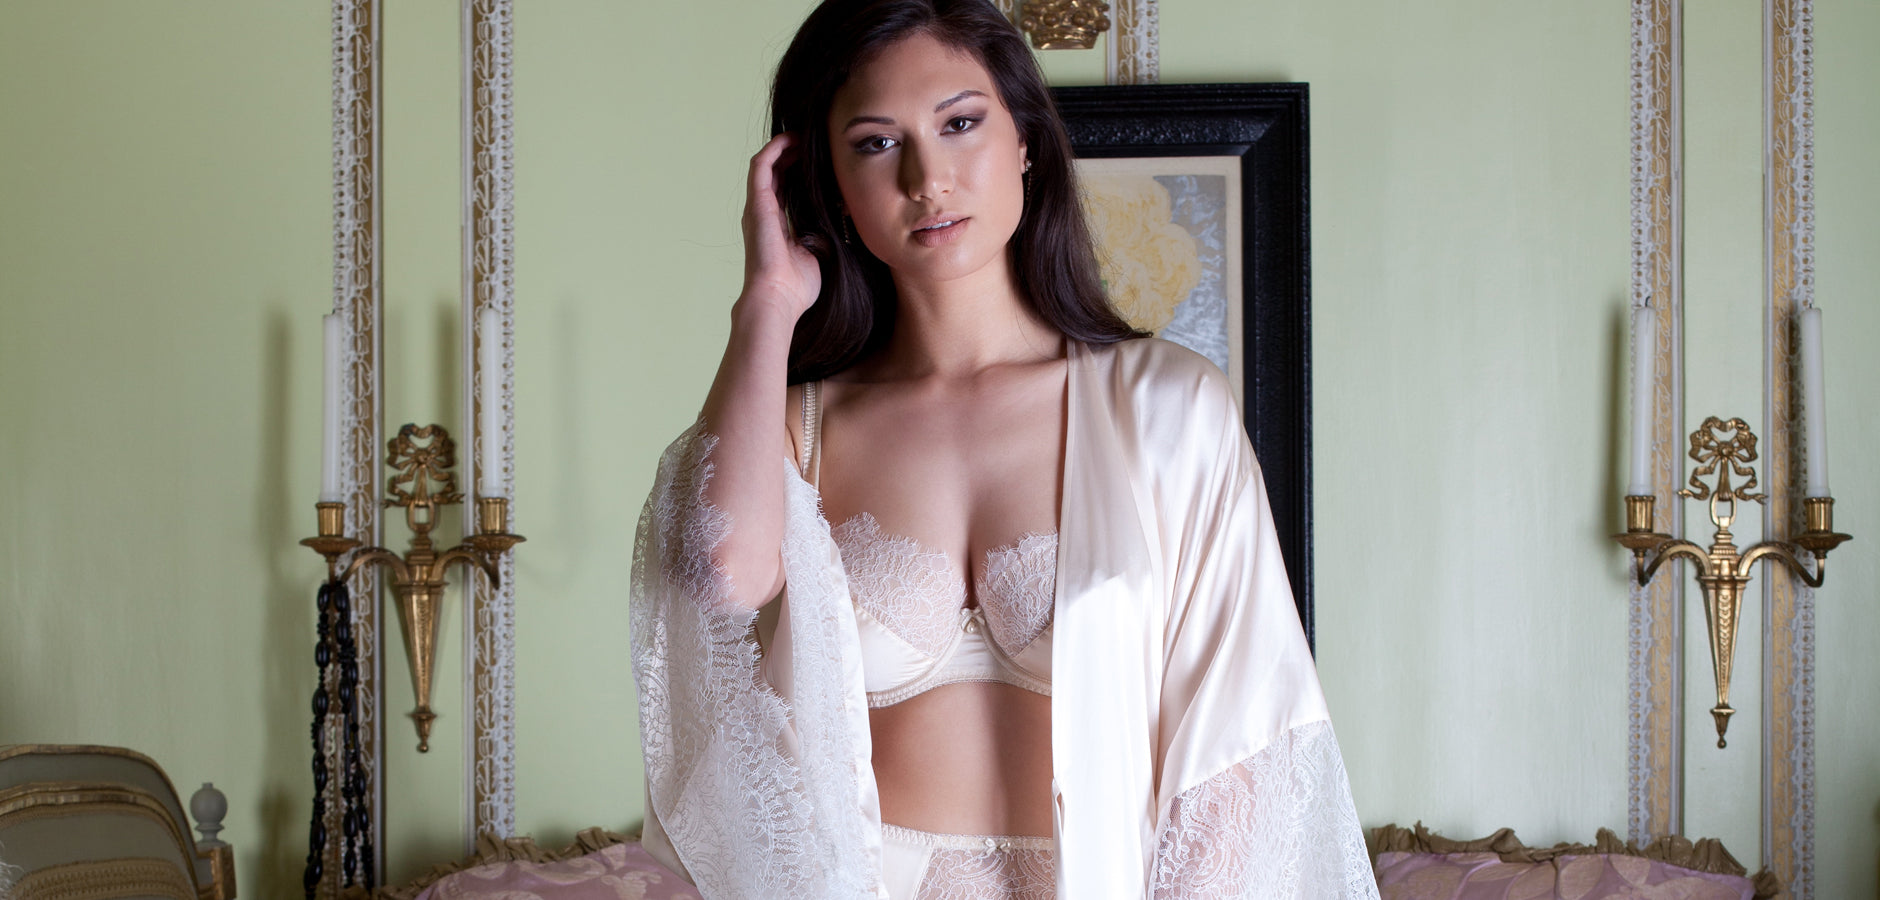 Luxury silk and lace wedding night lingerie